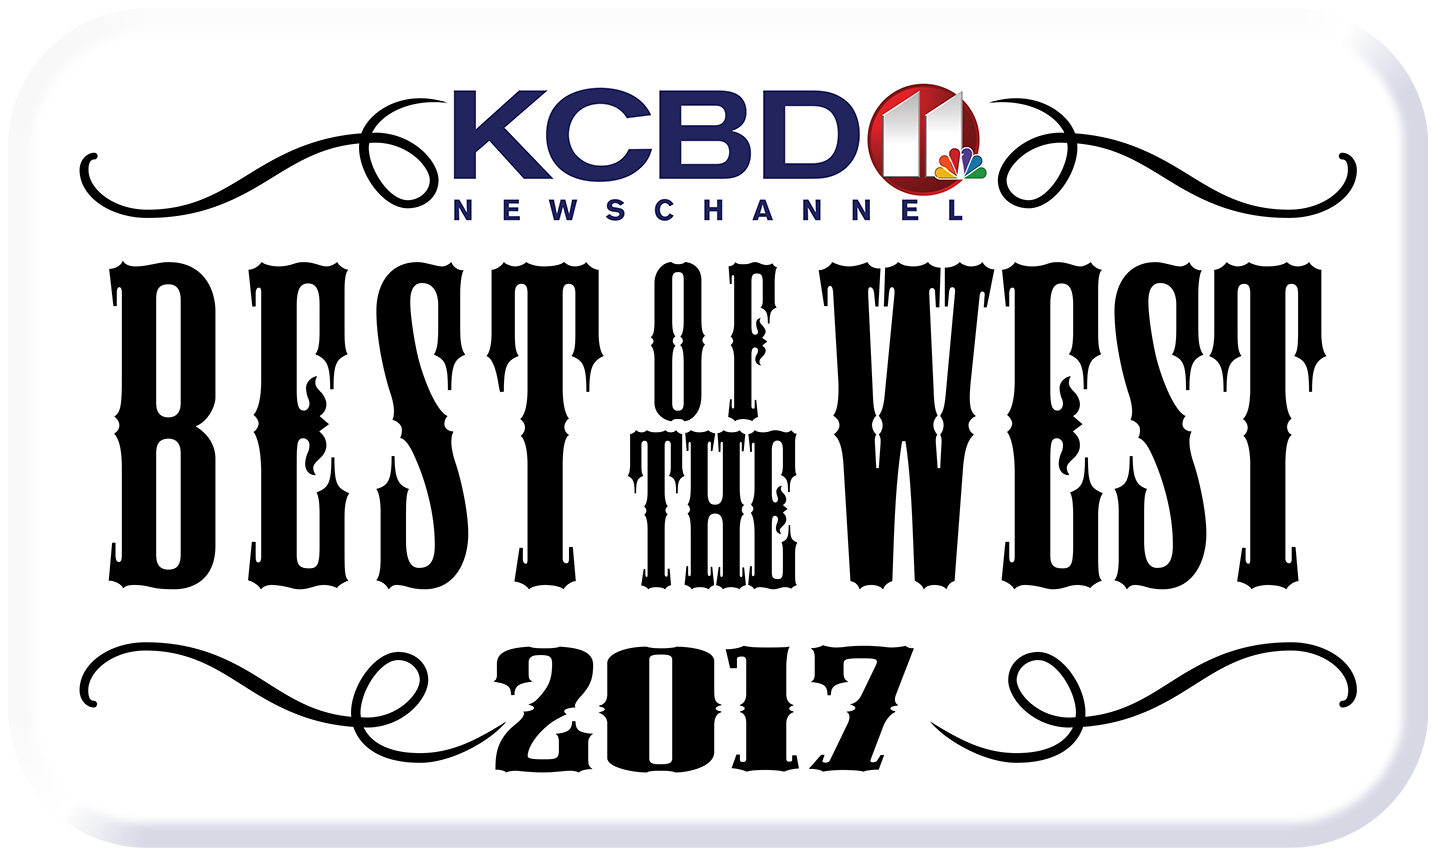 Comet Cleaners, winner, KCBD Best of the West 2015. Click to see the winners.